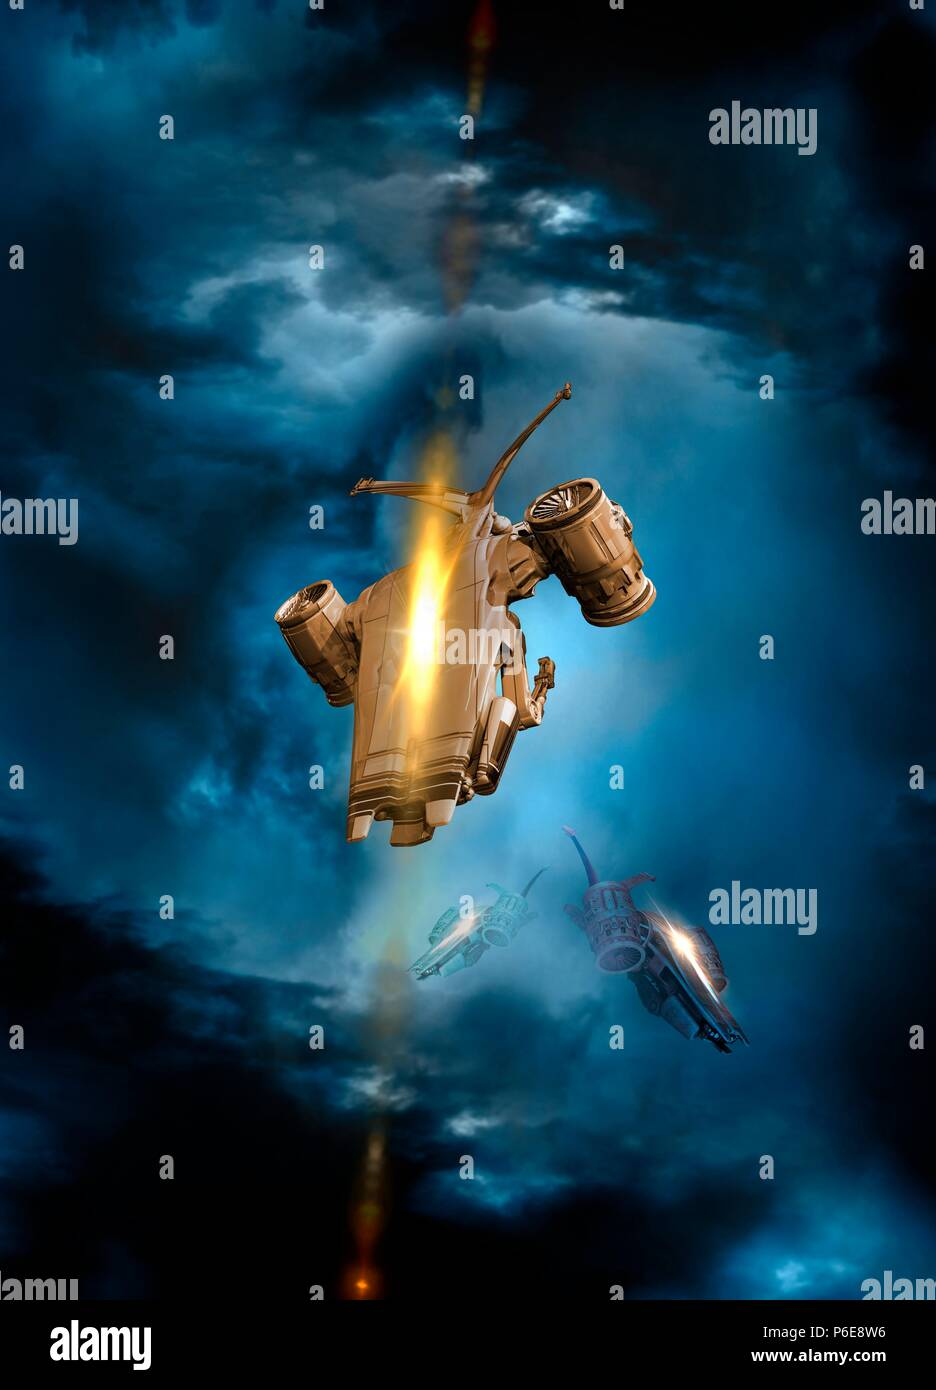 Drones in outer space, illustration. - Stock Image